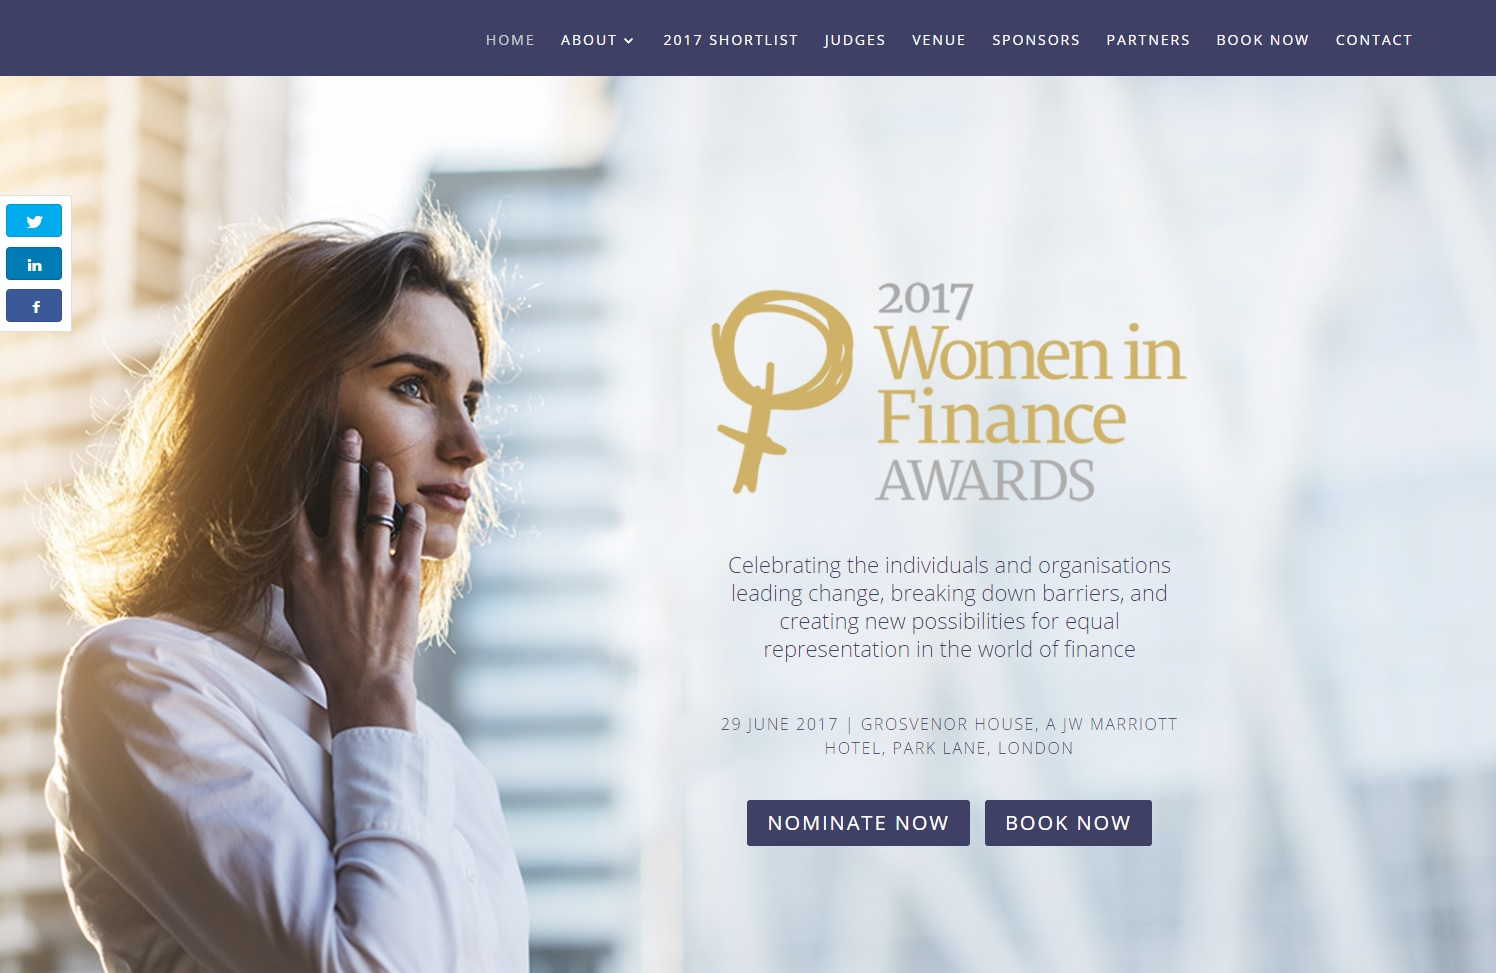 E2W - Shortlisted for the Recruiter of the Year in the Women in Finance Awards